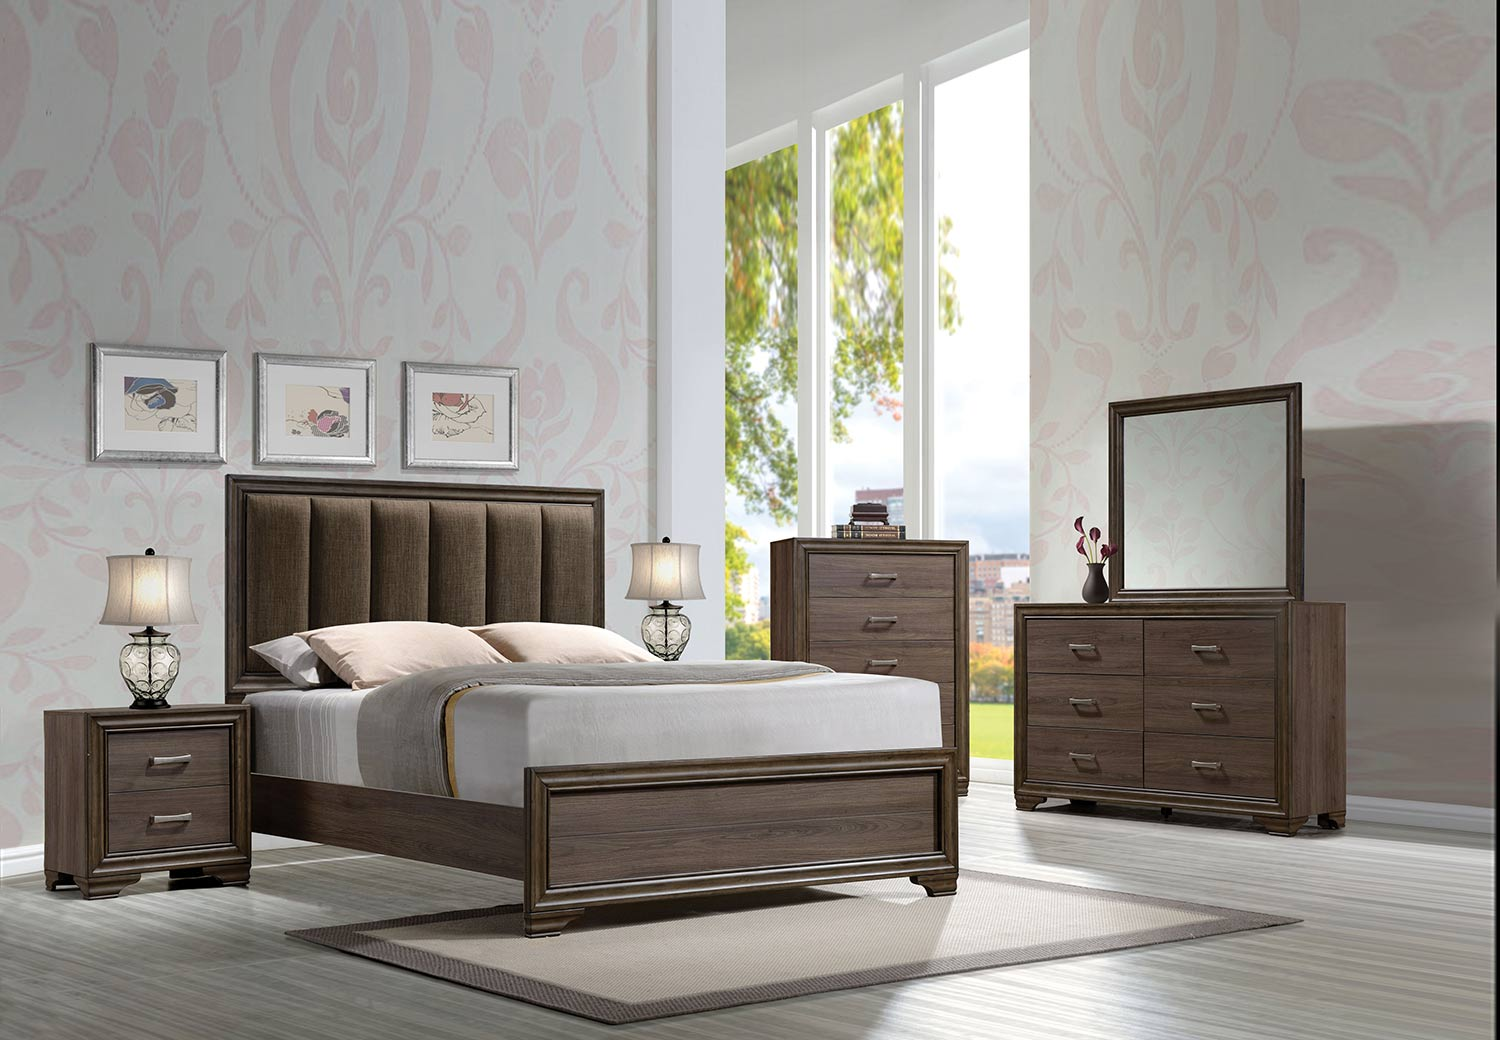 Acme Cyrille Bedroom Set (Padded HB) - Fabric/Walnut